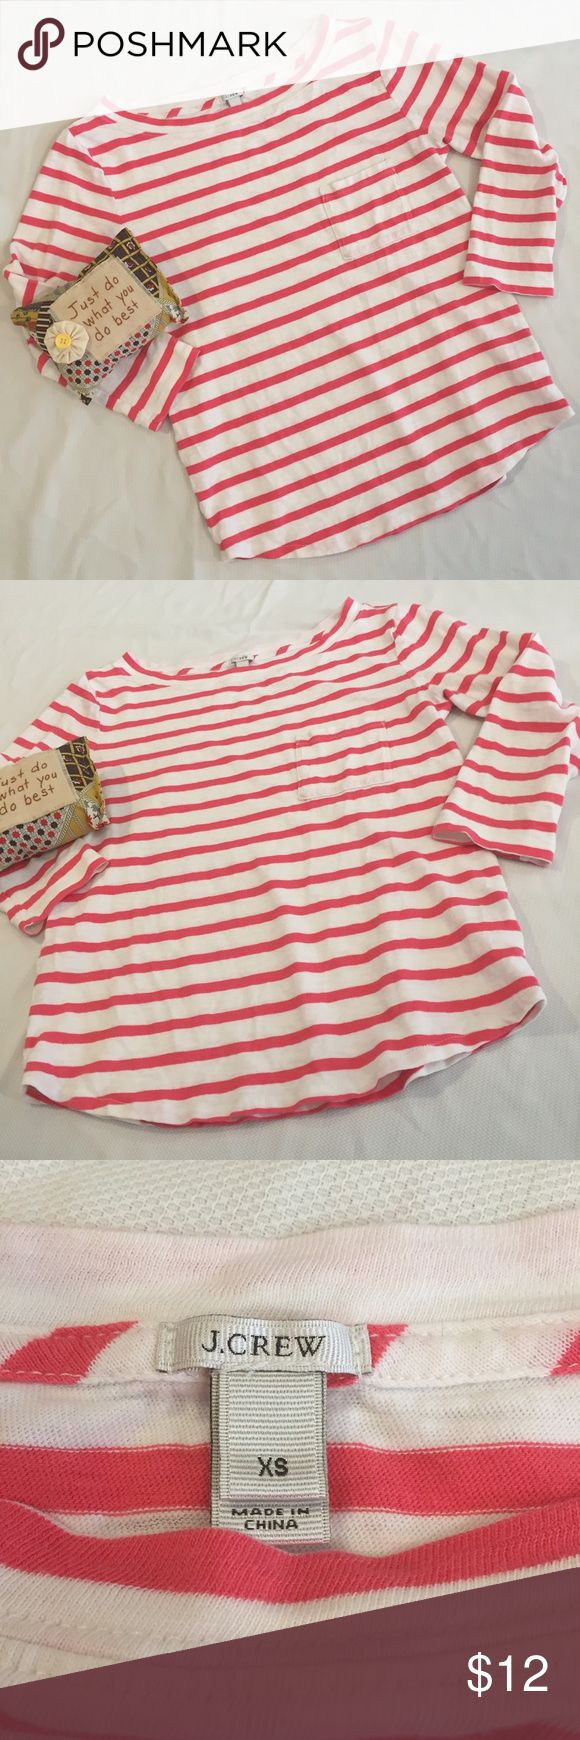 J Crew striped shirt Pink and white striped 3/4 sleeve J Crew shirt with a pocket on the front. Cute top!!! Size XS. J Crew Tops